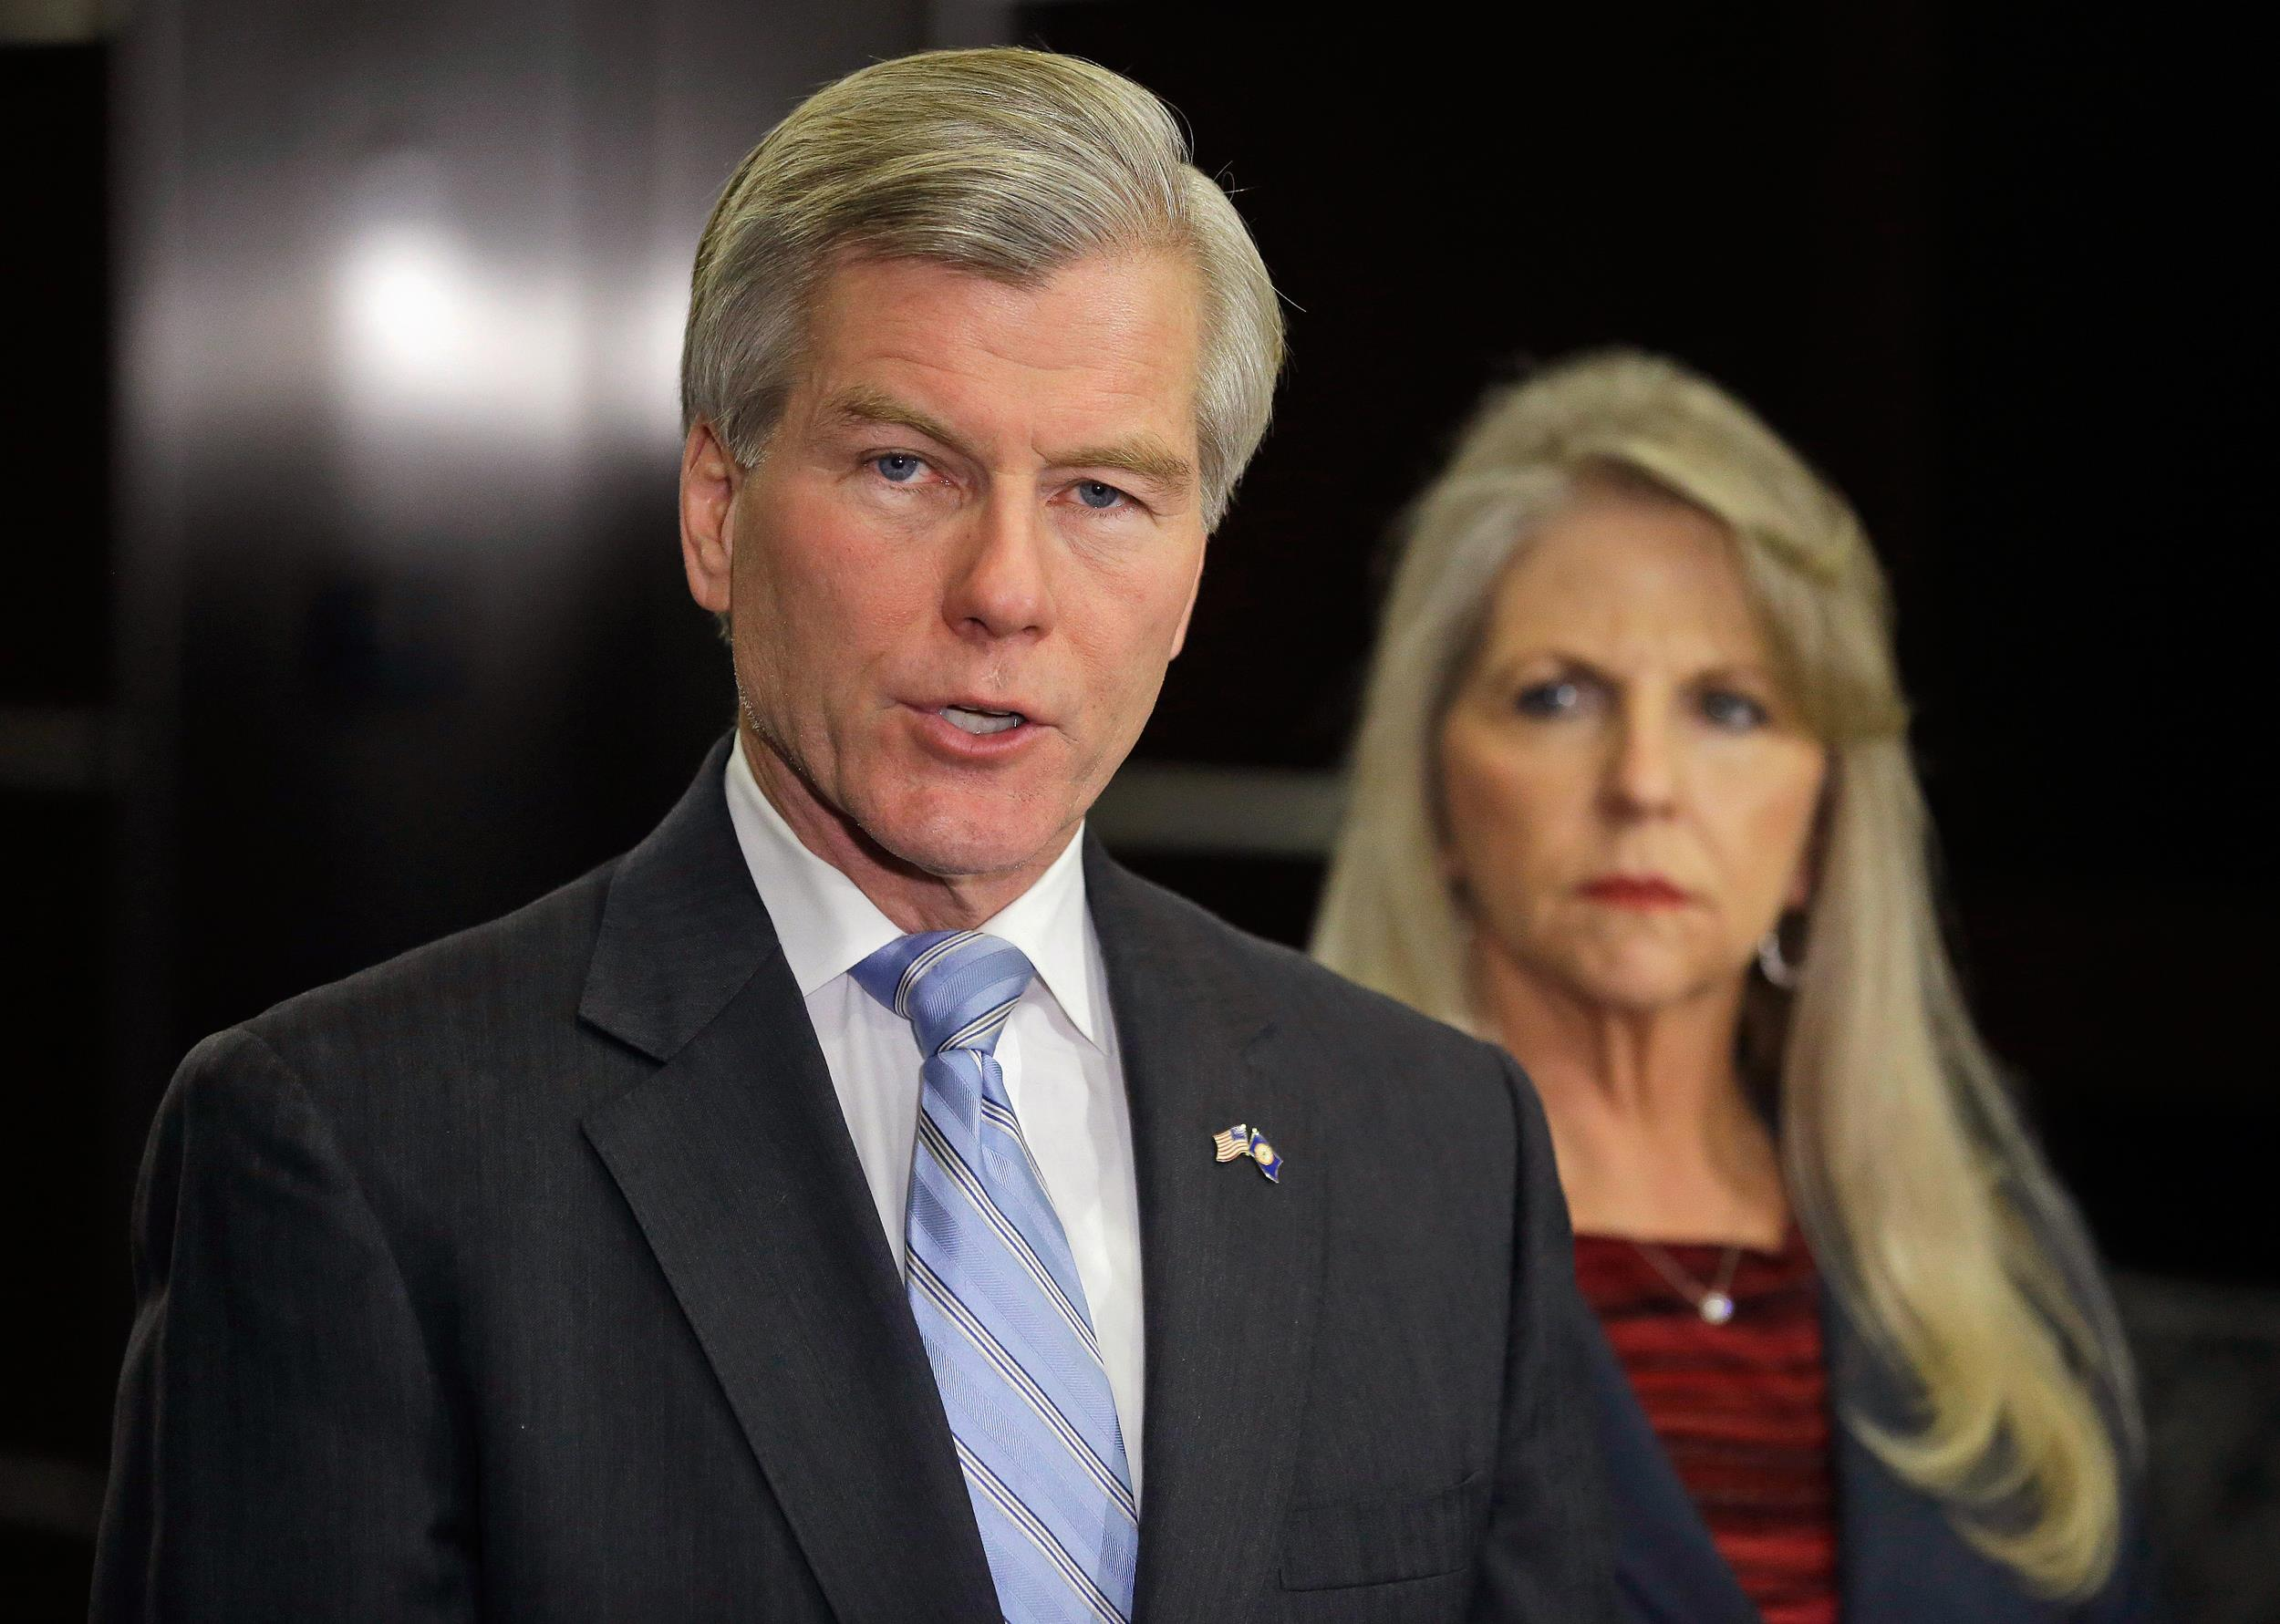 Image: Former Virginia Gov. Bob McDonnell makes a statement with his wife, Maureen, in January.